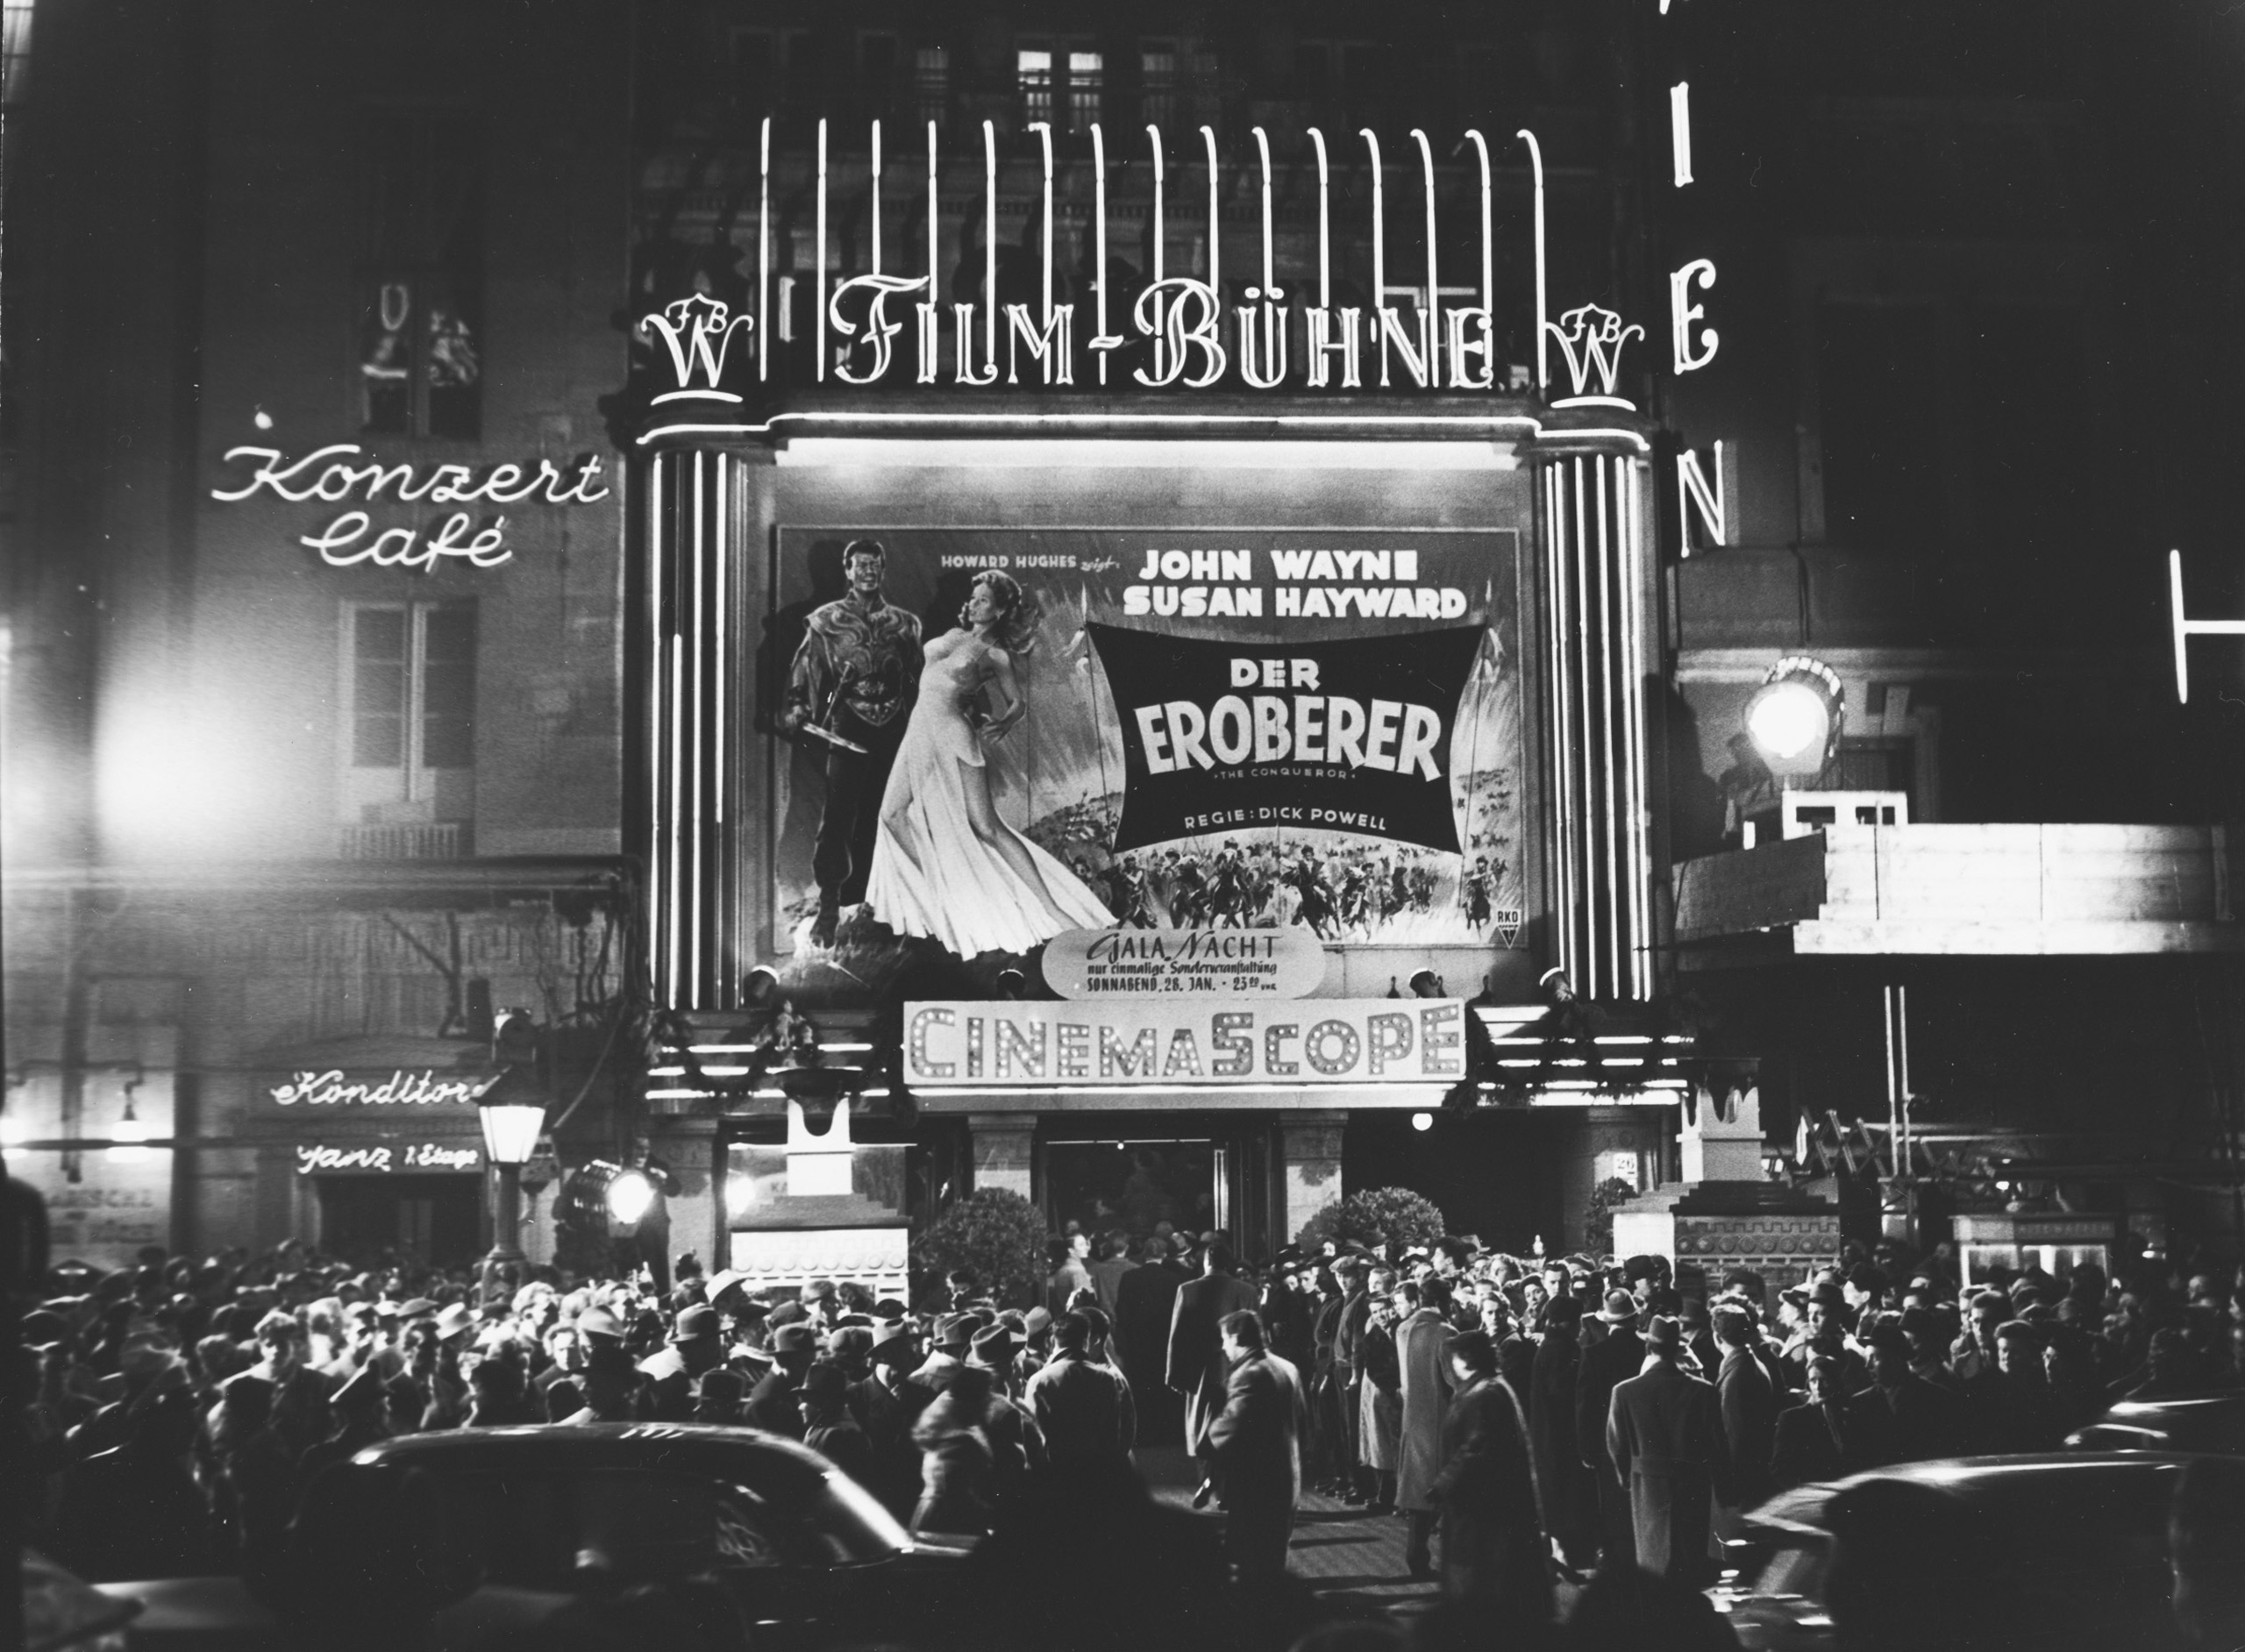 Black and white photo: cinema façade at night with illuminated advertisements, posters for Der Eroberer (directed by Dick Powell) and a crowd of people